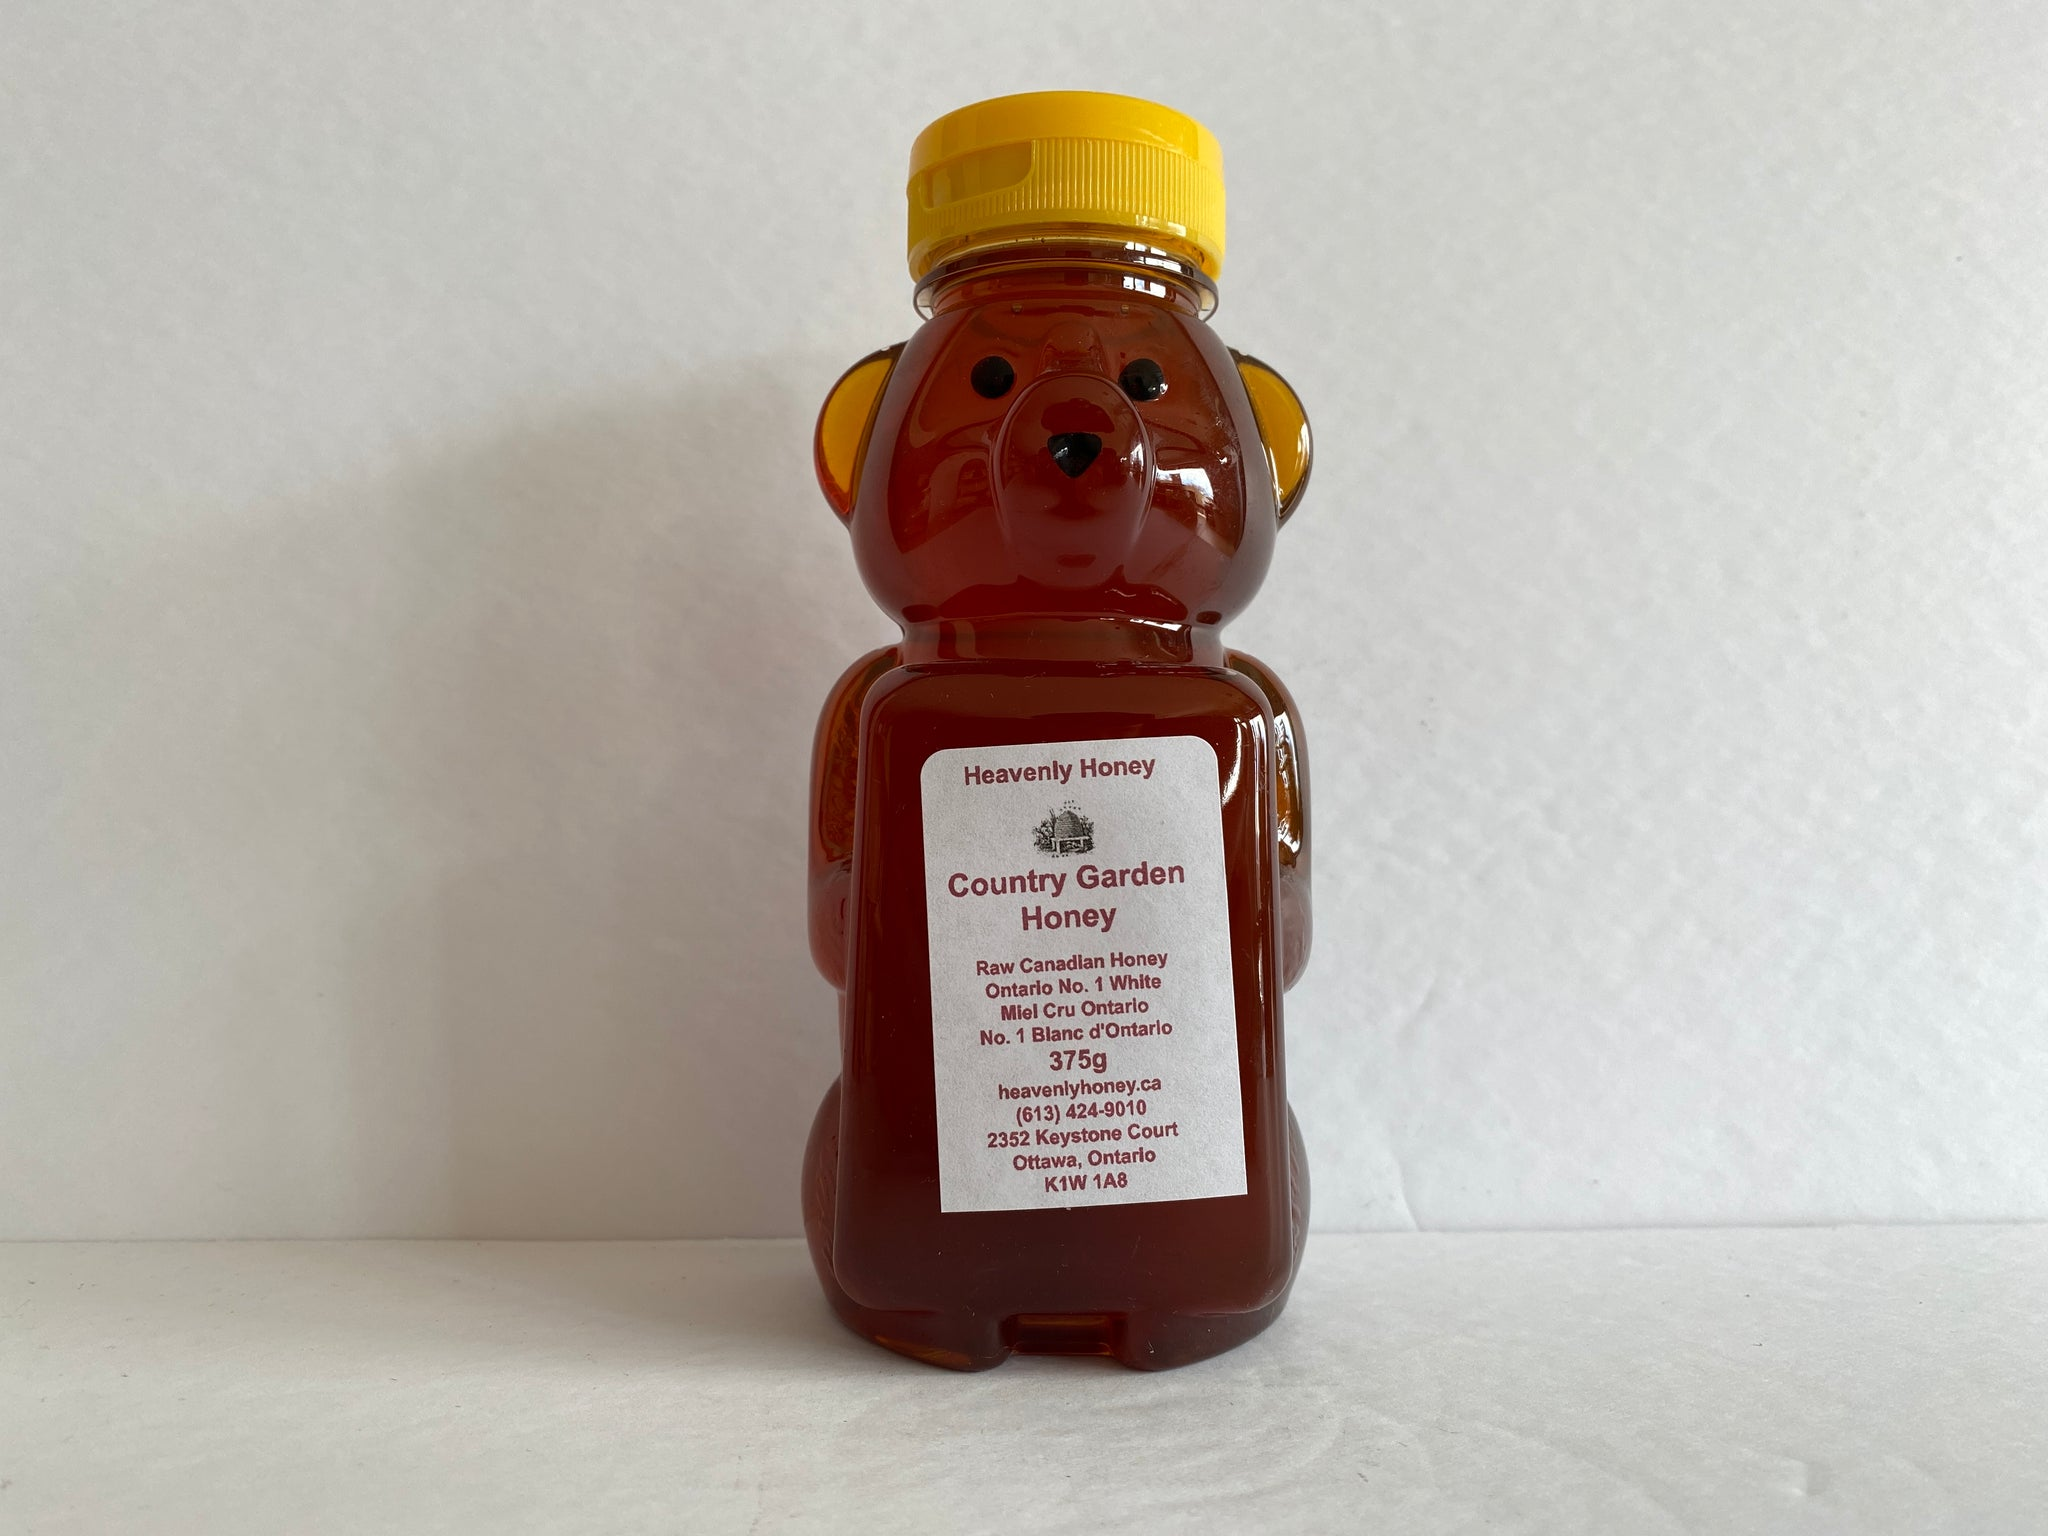 Heavenly Honey Country Garden Honey - 375g